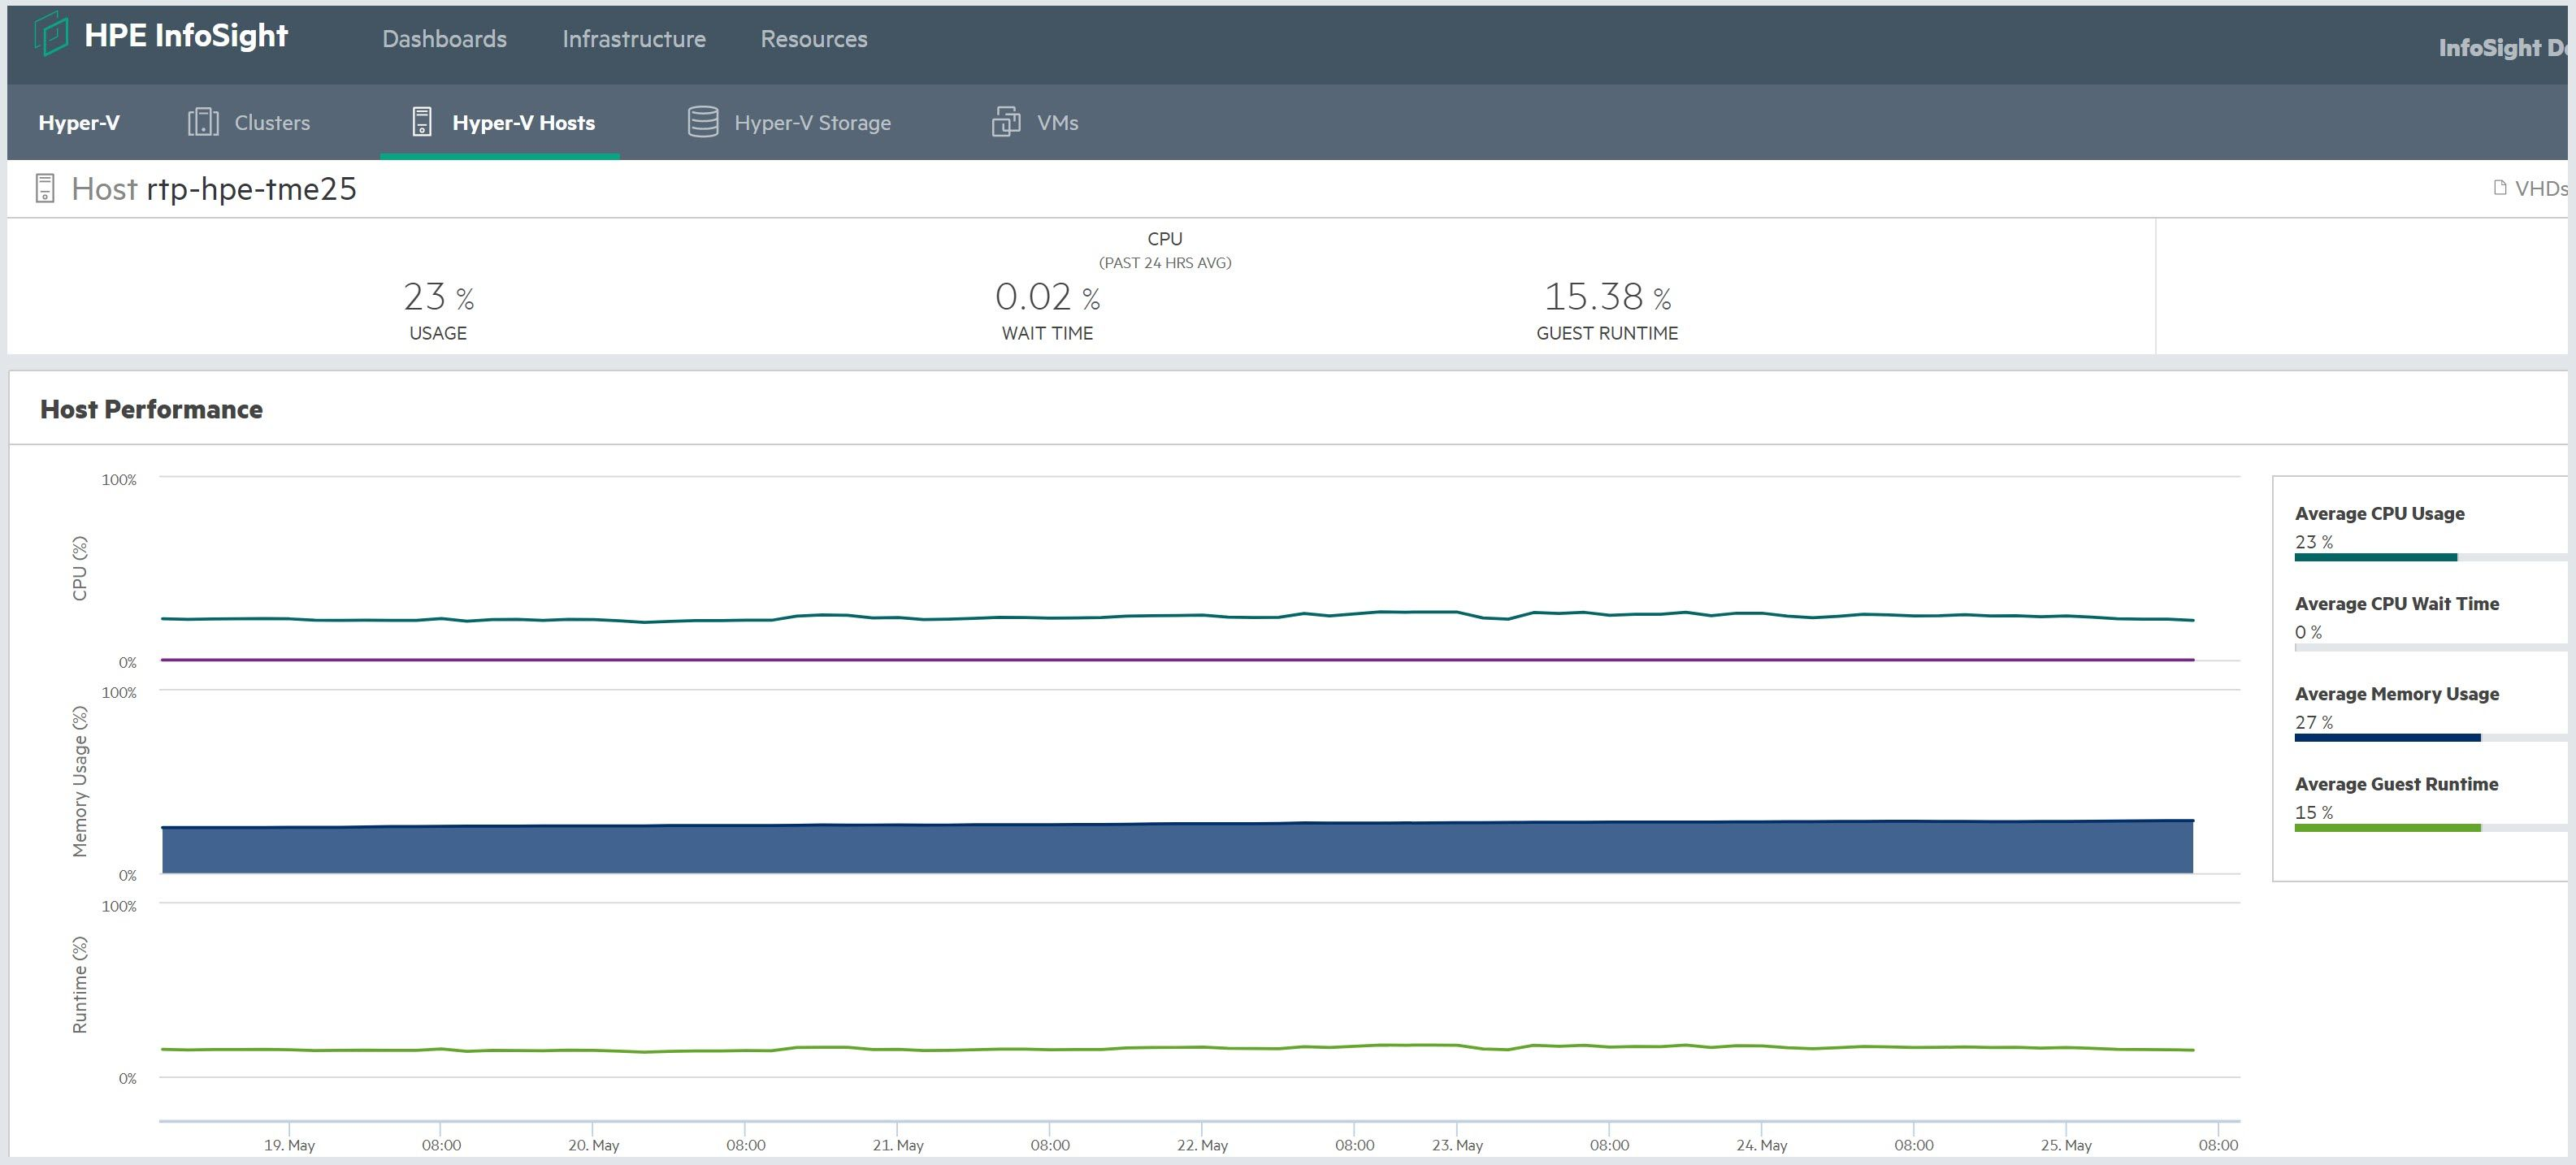 Hyper-V Host Performance view showing CPU usage and average guest runtime for VMs